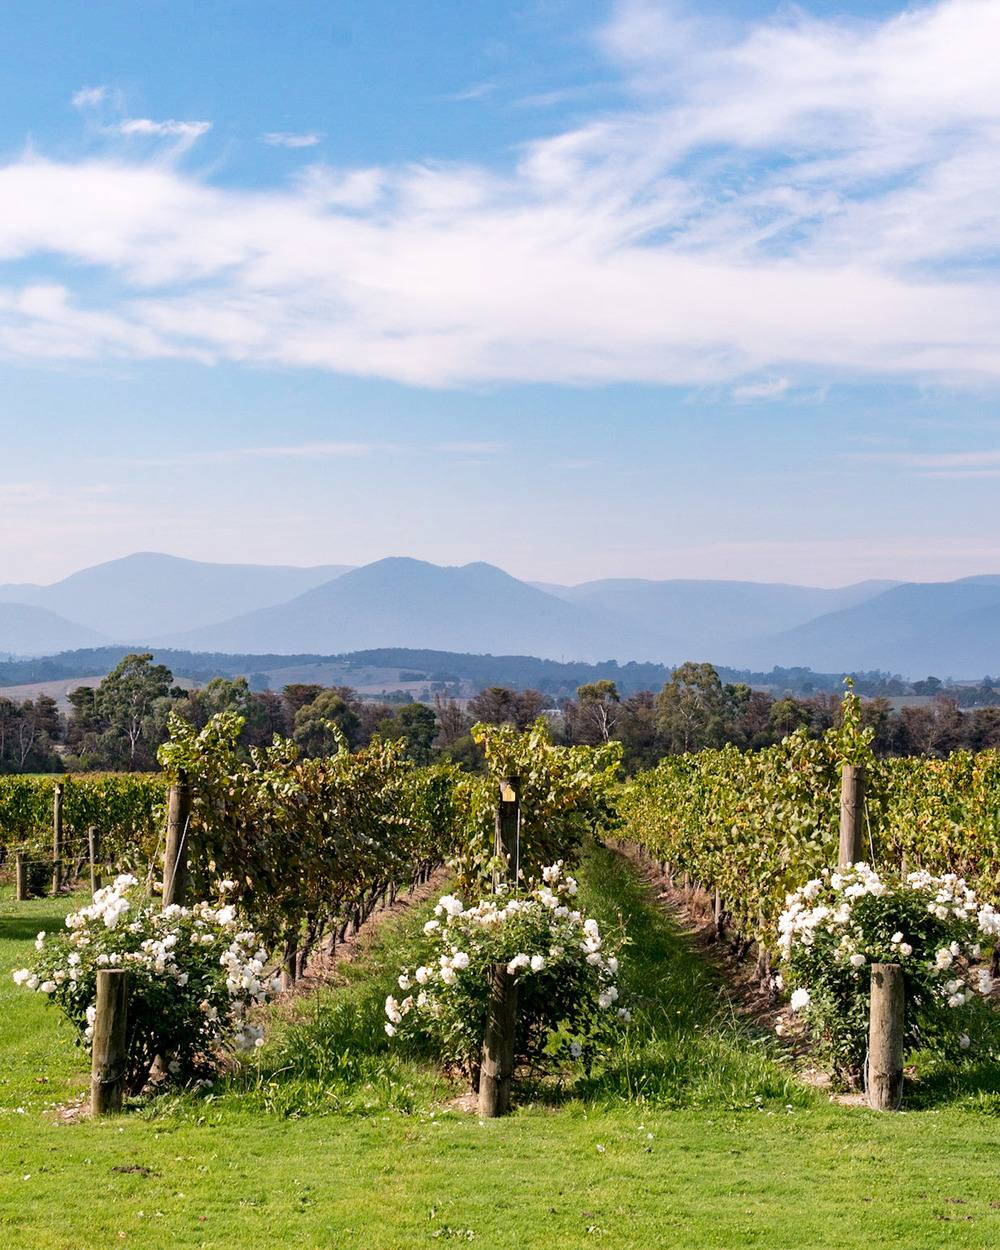 Vineyards - Domaine Chandon Yarra Valley - Melbourne, Australia